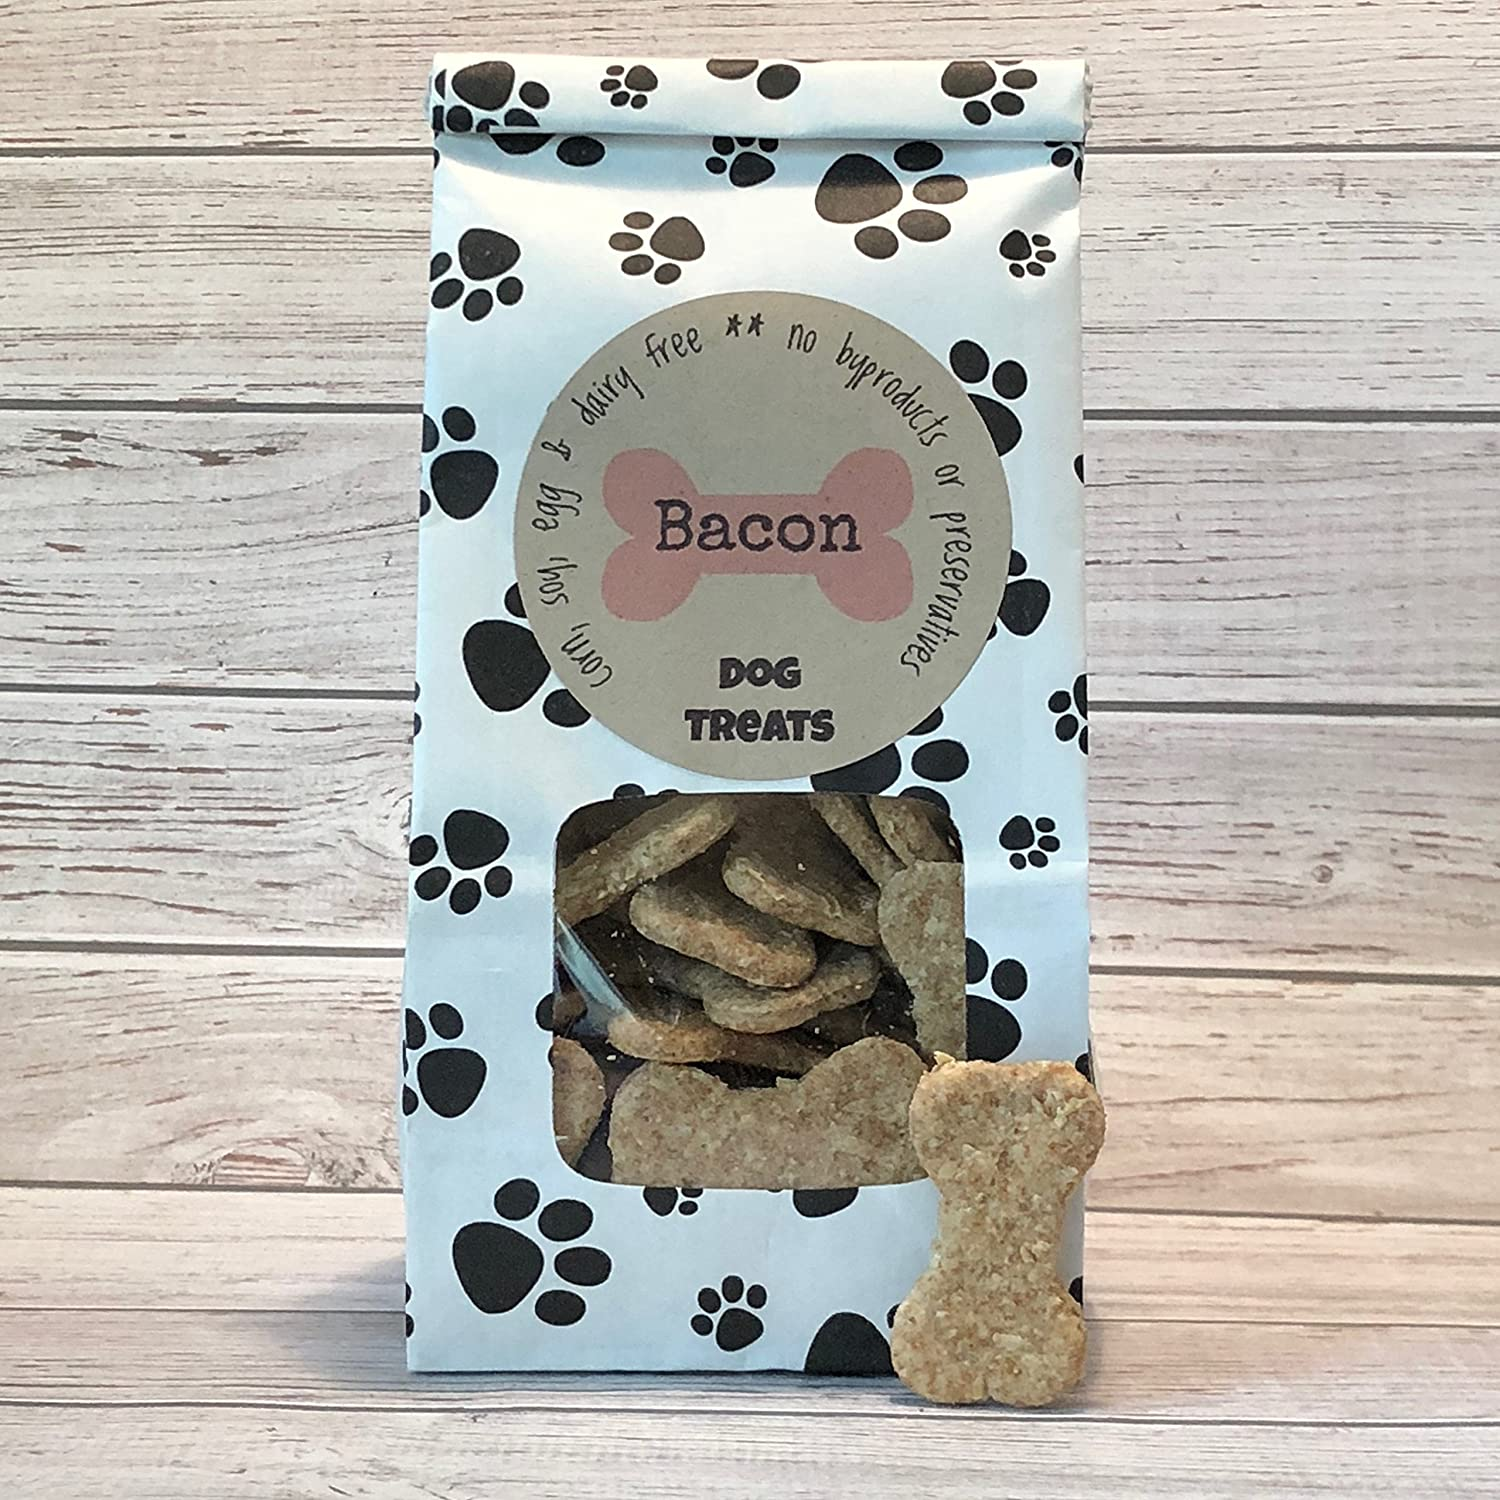 5 oz Bacon Dog Treats/Handmade/Corn Soy and Dairy Free/Egg Free//No Added Preservatives, Fillers or Color